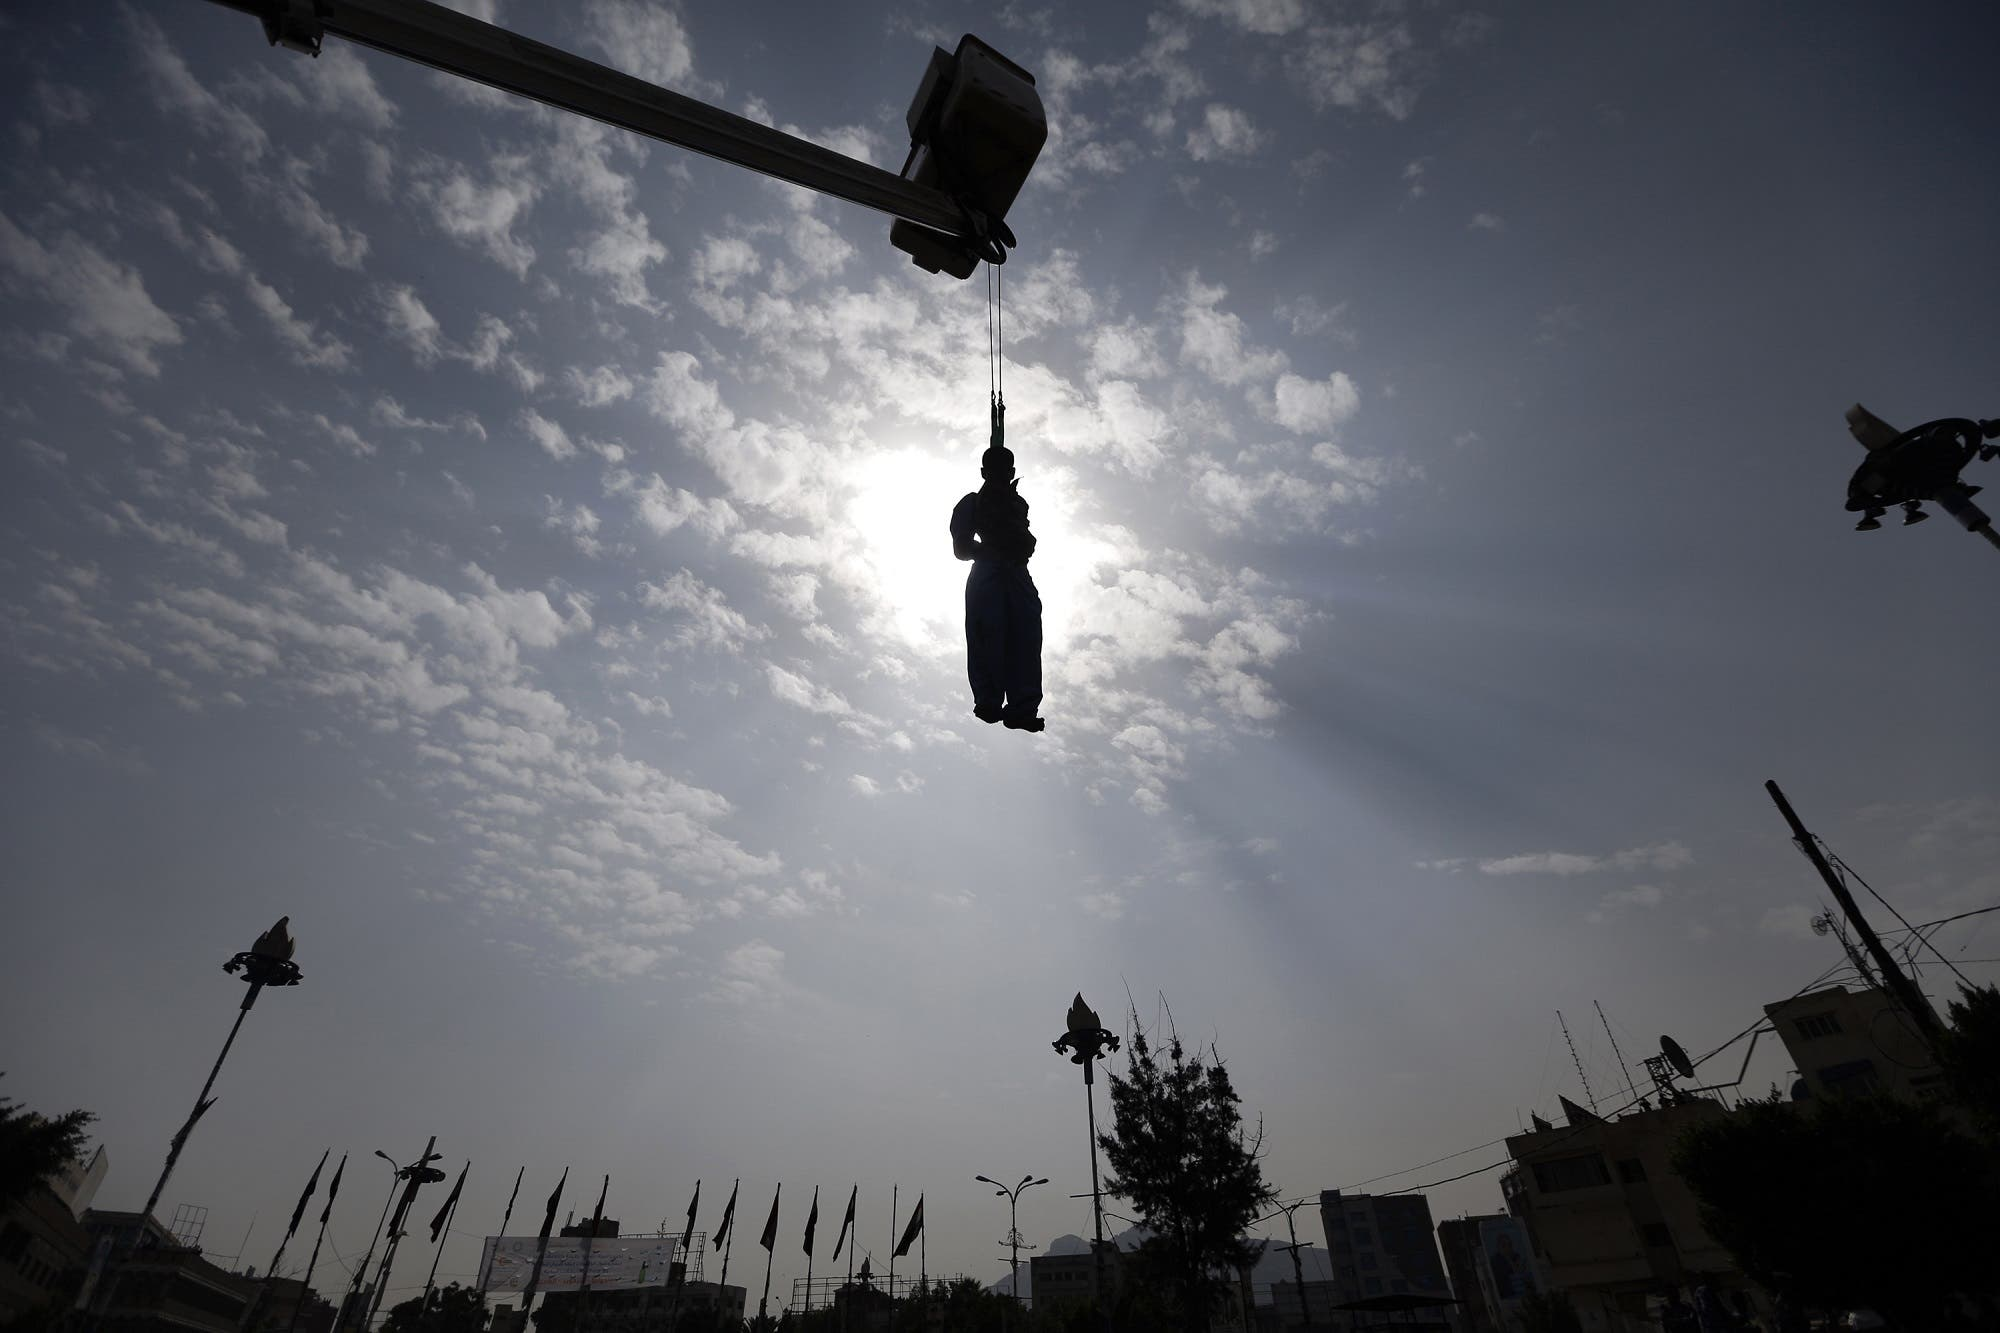 The body of Yemeni Hussein al-Saket, 22, is seen hanging after being executed by security forces for raping and murdering a four-year-old girl, in the capital Sanaa's Tahrir Square, on August 14, 2017. (AFP)